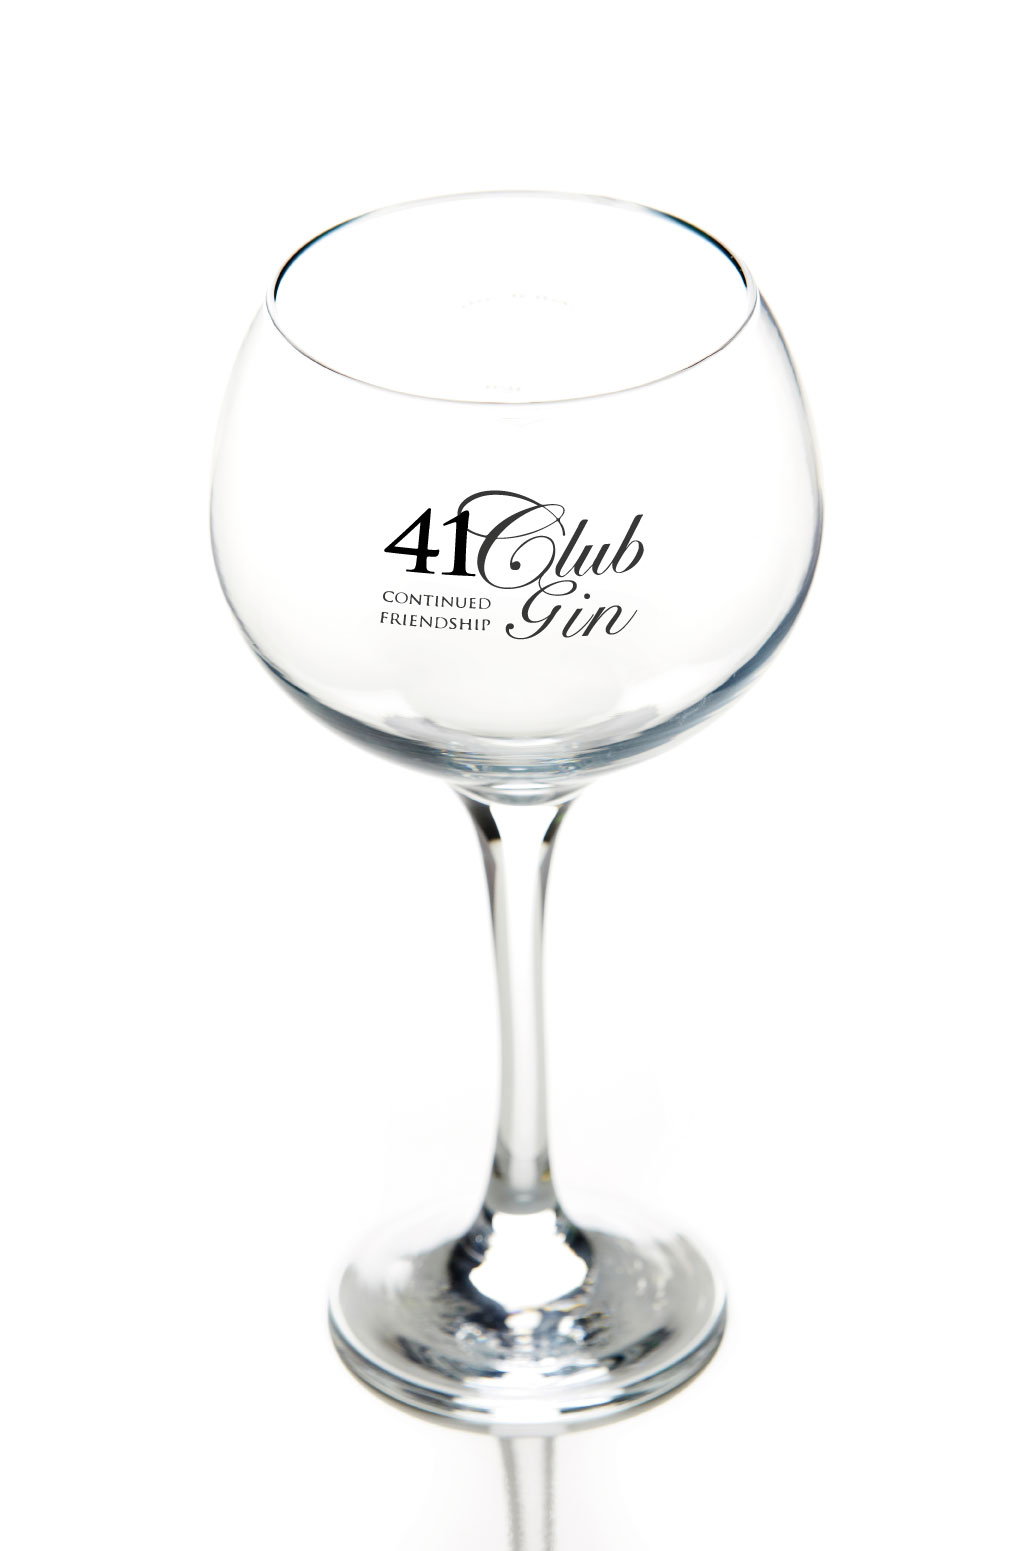 41 Club Copa de Balon Glass